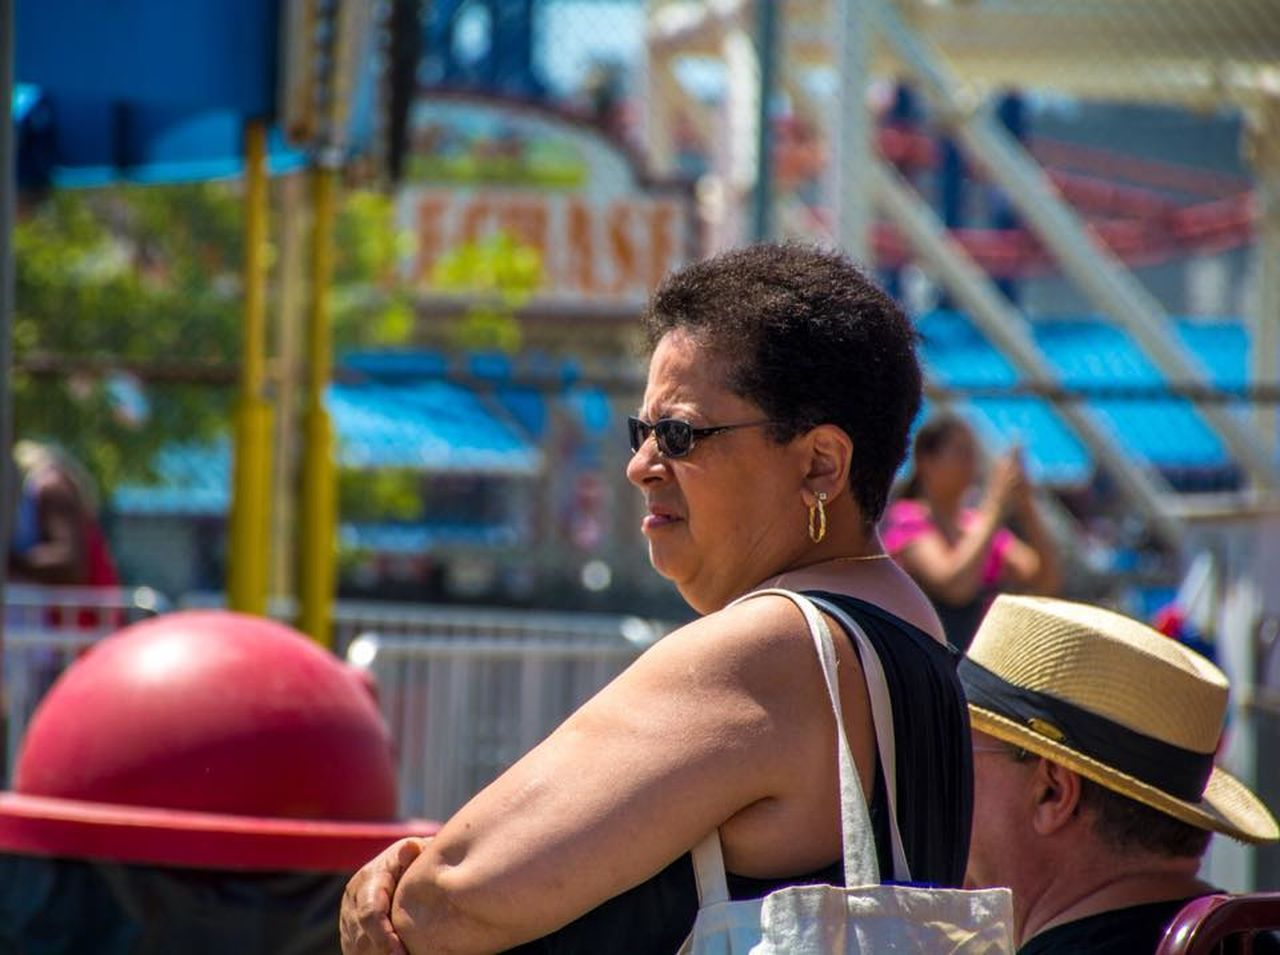 amusement park, leisure activity, two people, day, eyeglasses, outdoors, people, adult